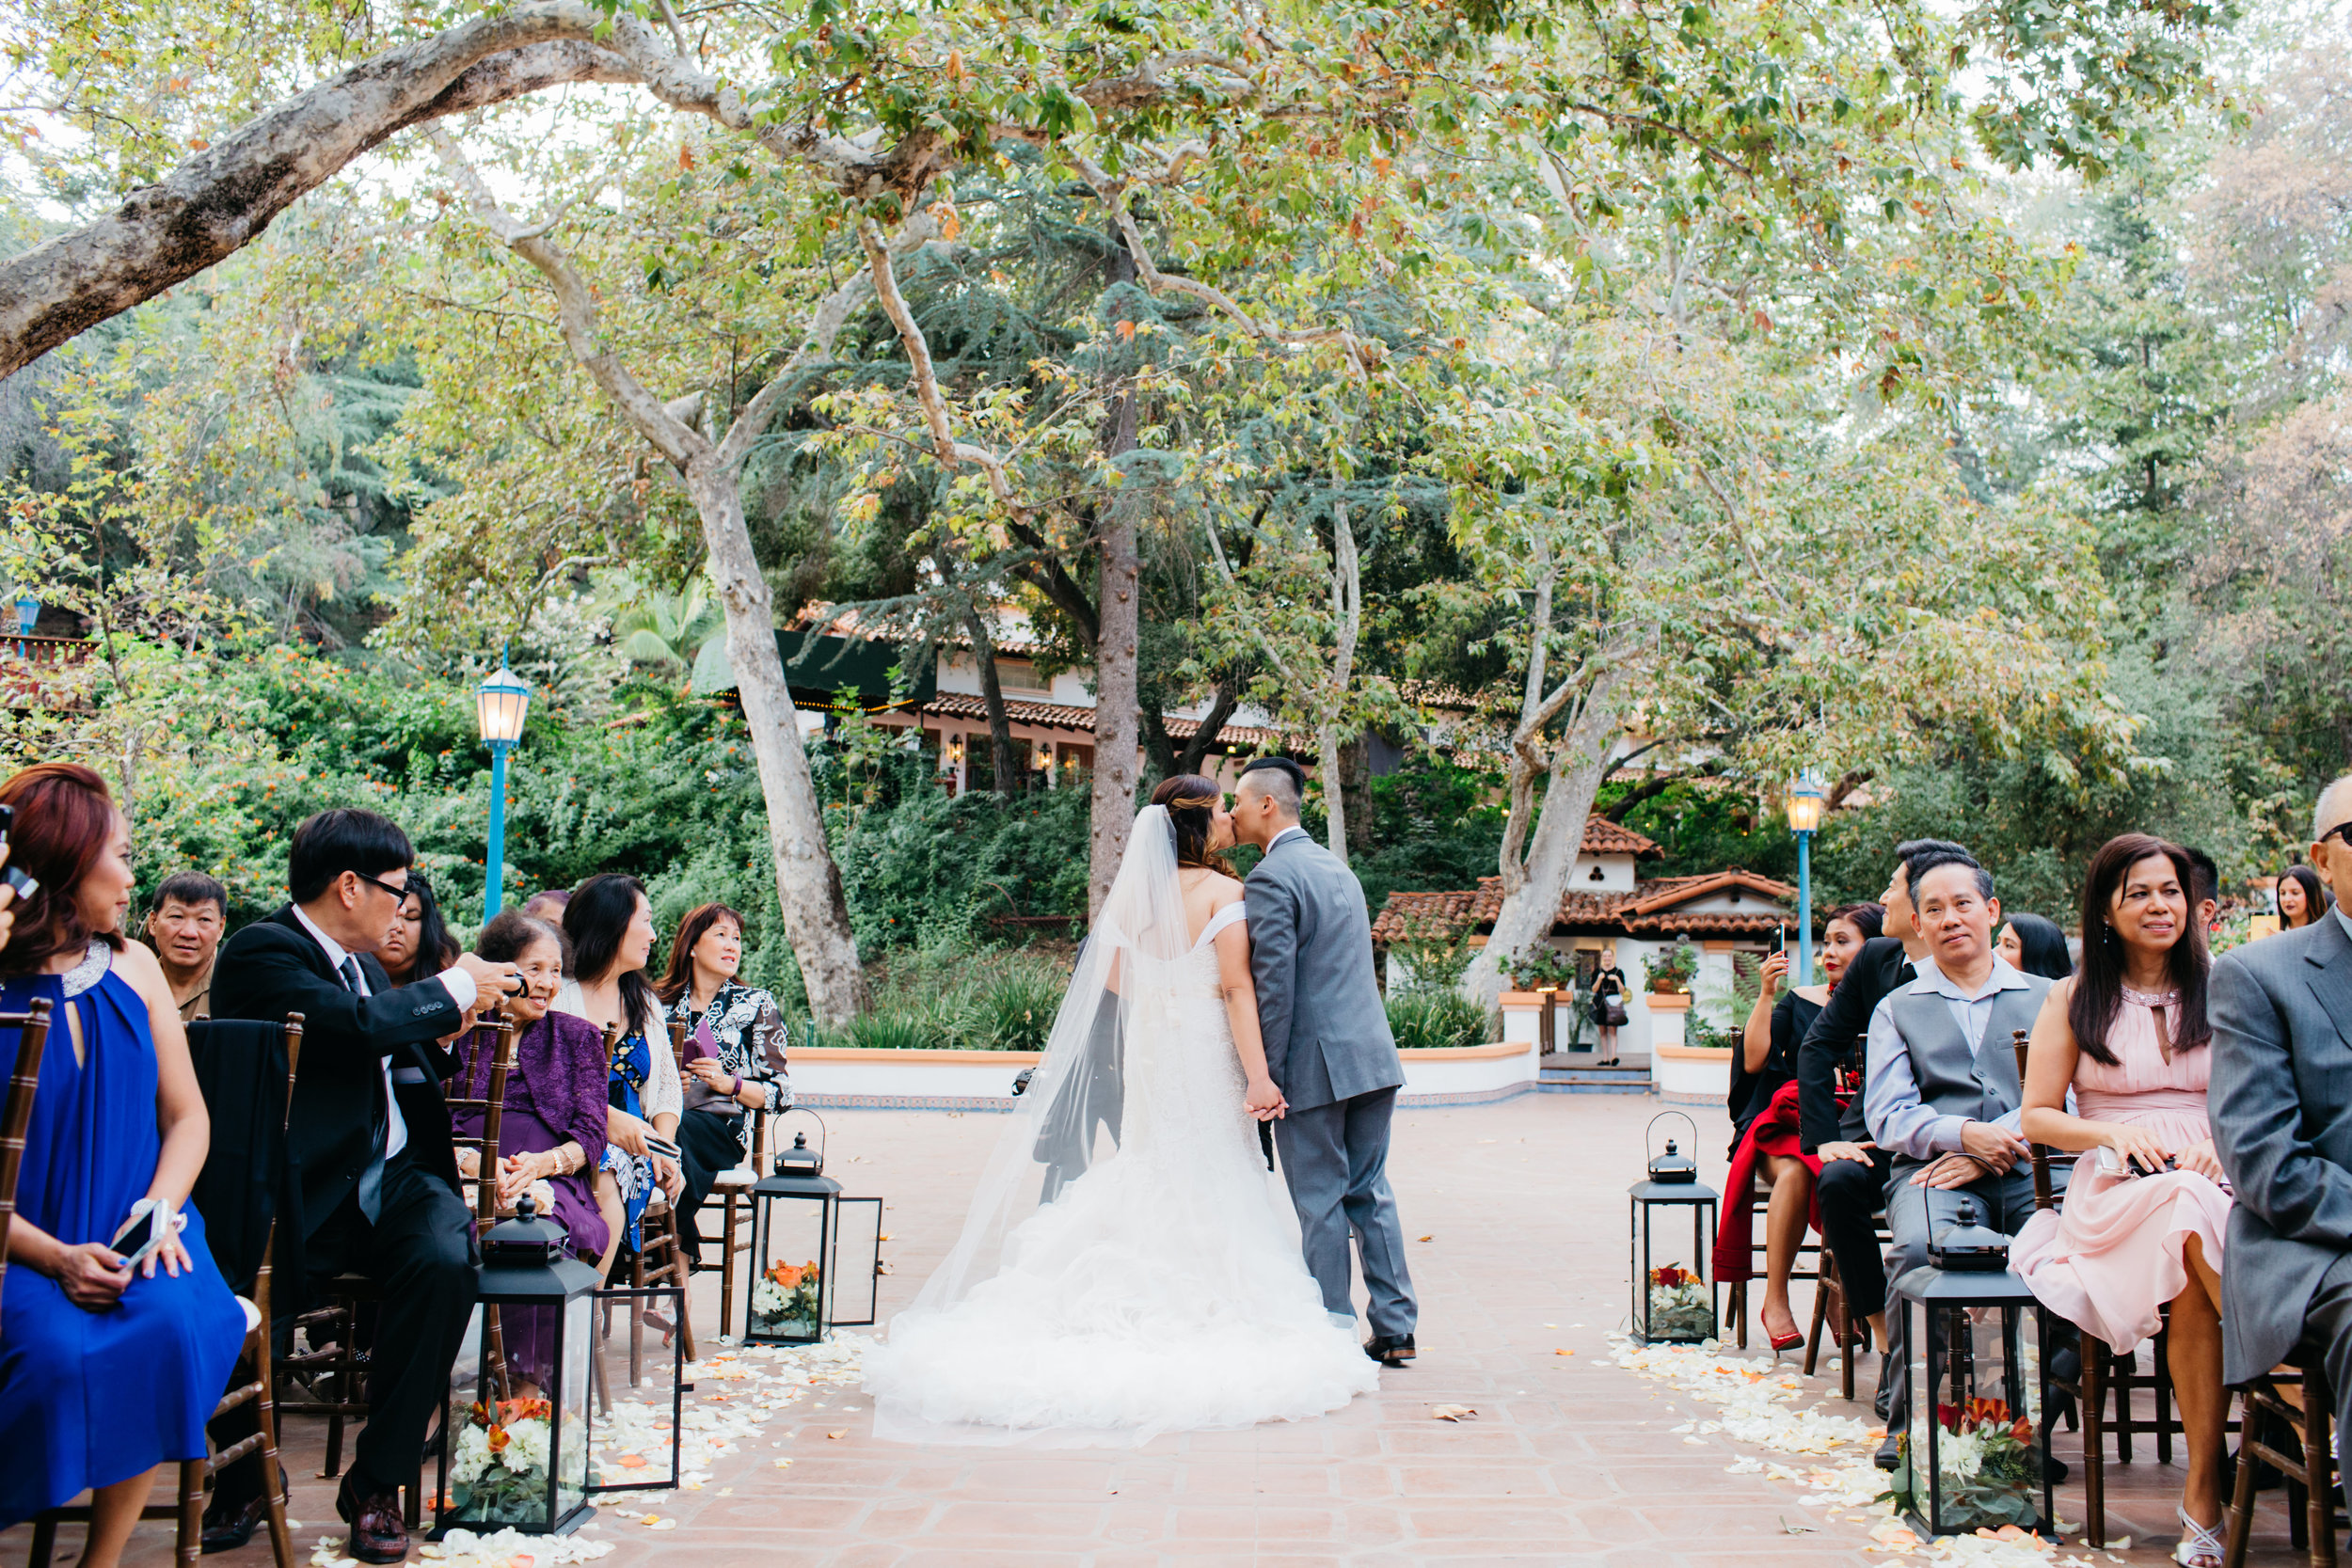 rancho-las-lomas-wedding-planner-best-wedding-planner-in-southern-california95.jpg